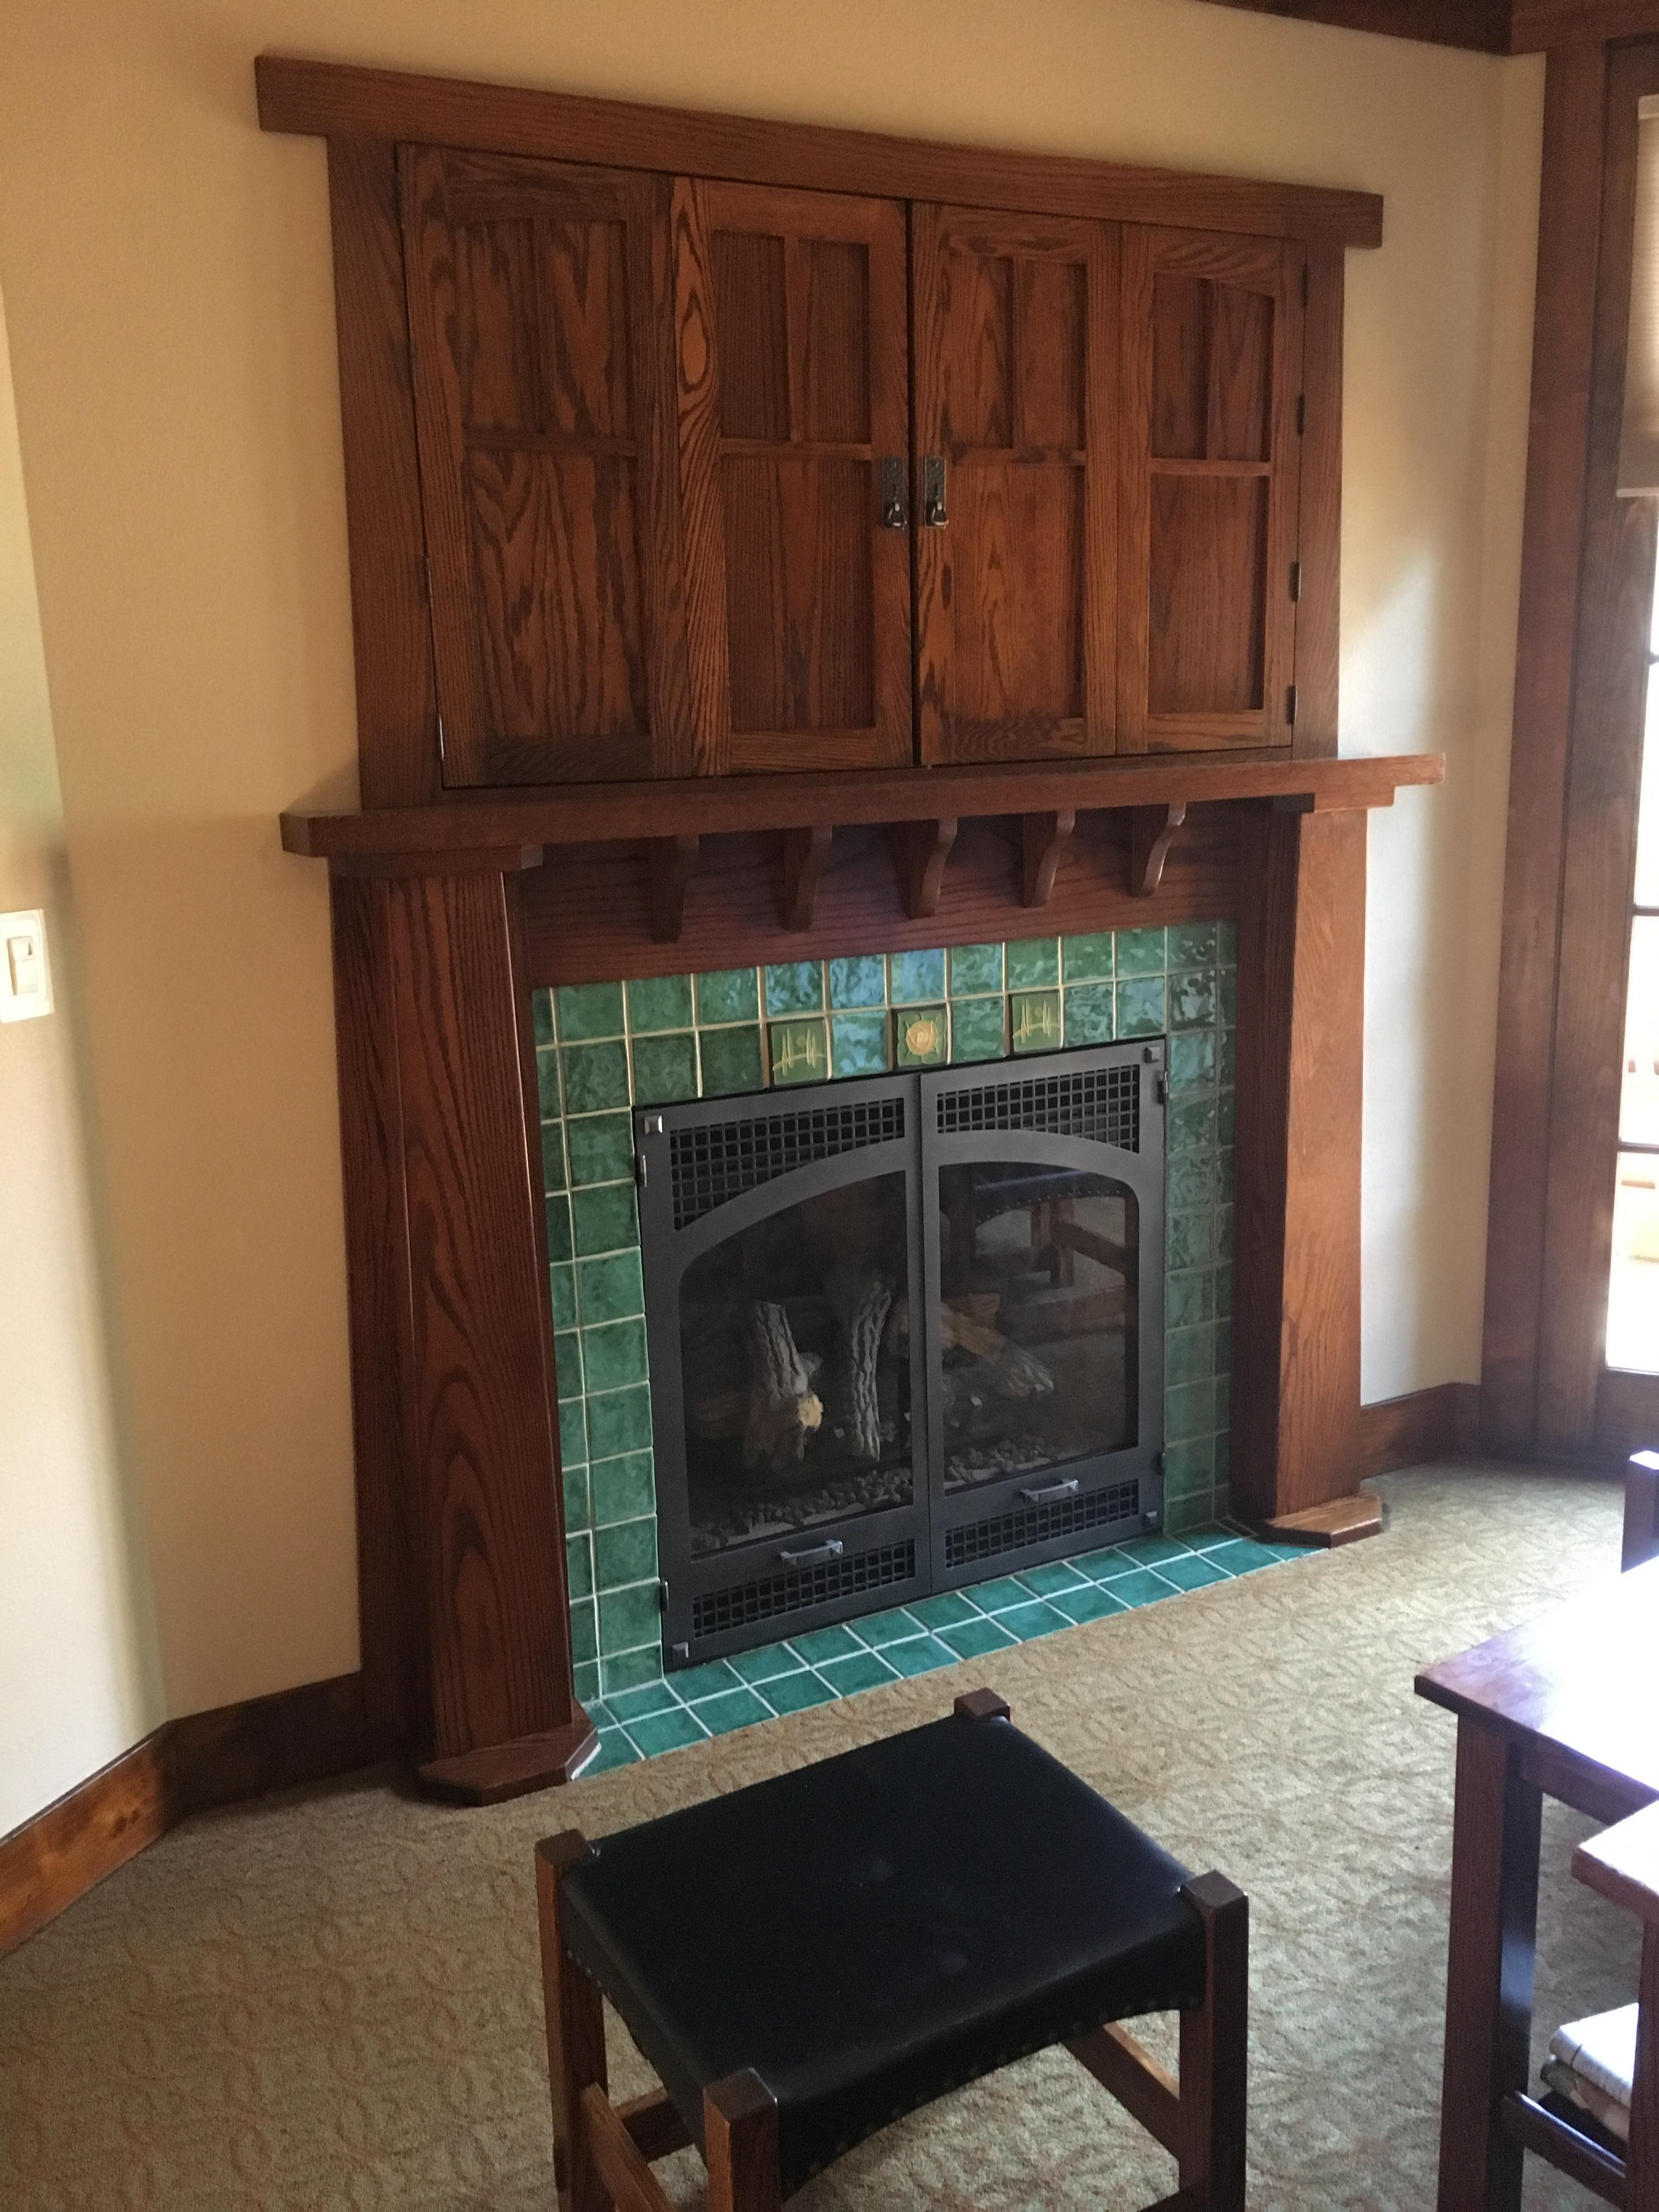 Gas fireplace in room